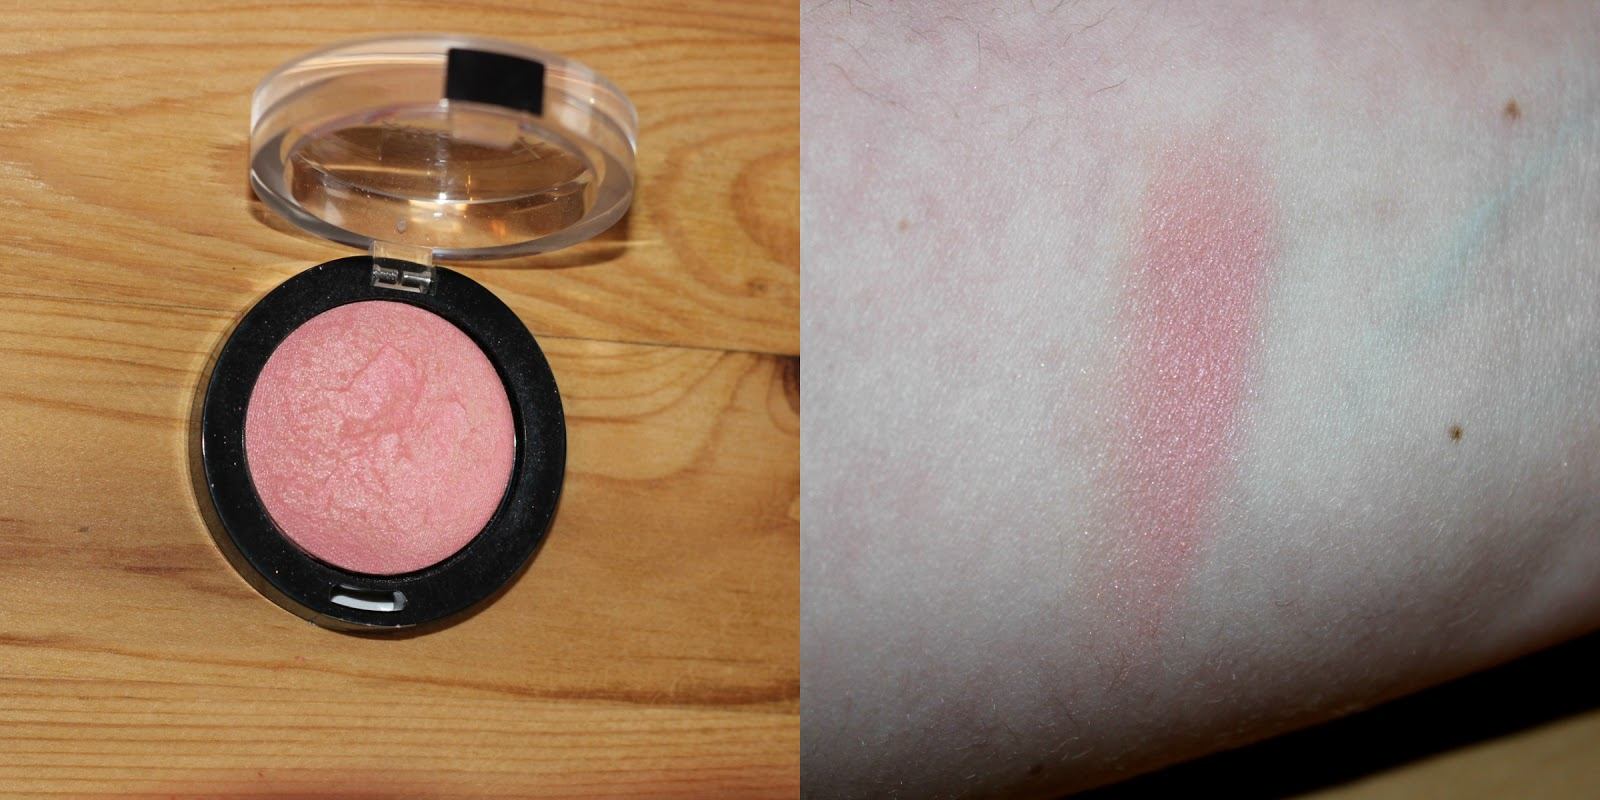 Maxfactor Creme Puff Blush In Lovely Pink Swatch